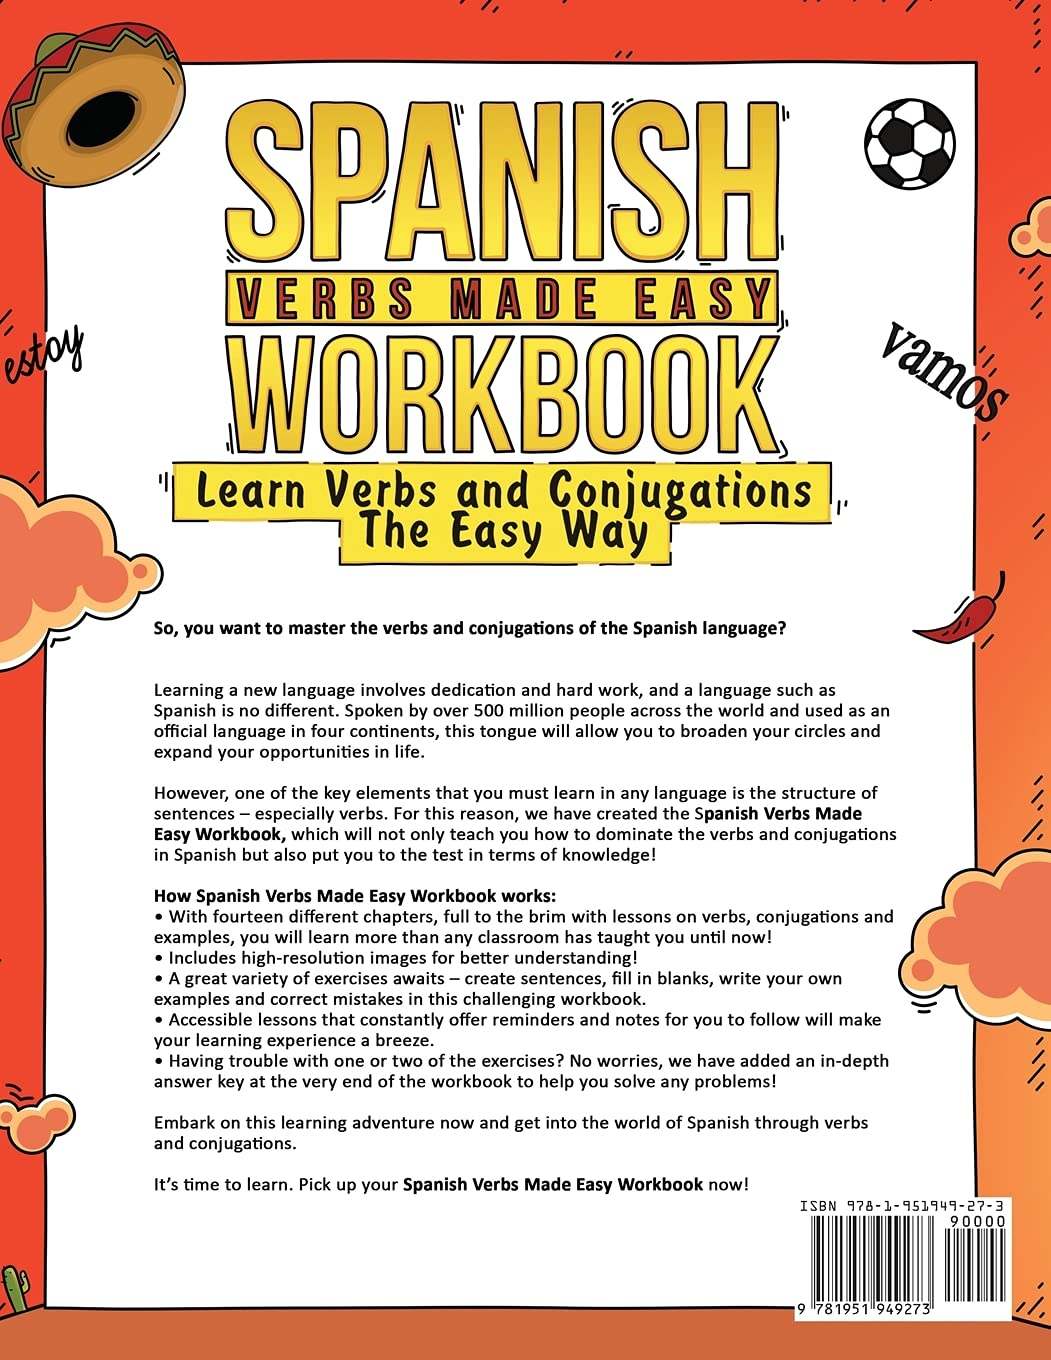 Spanish Verbs Made Easy Workbook Learn Verbs and Conjugations The ...